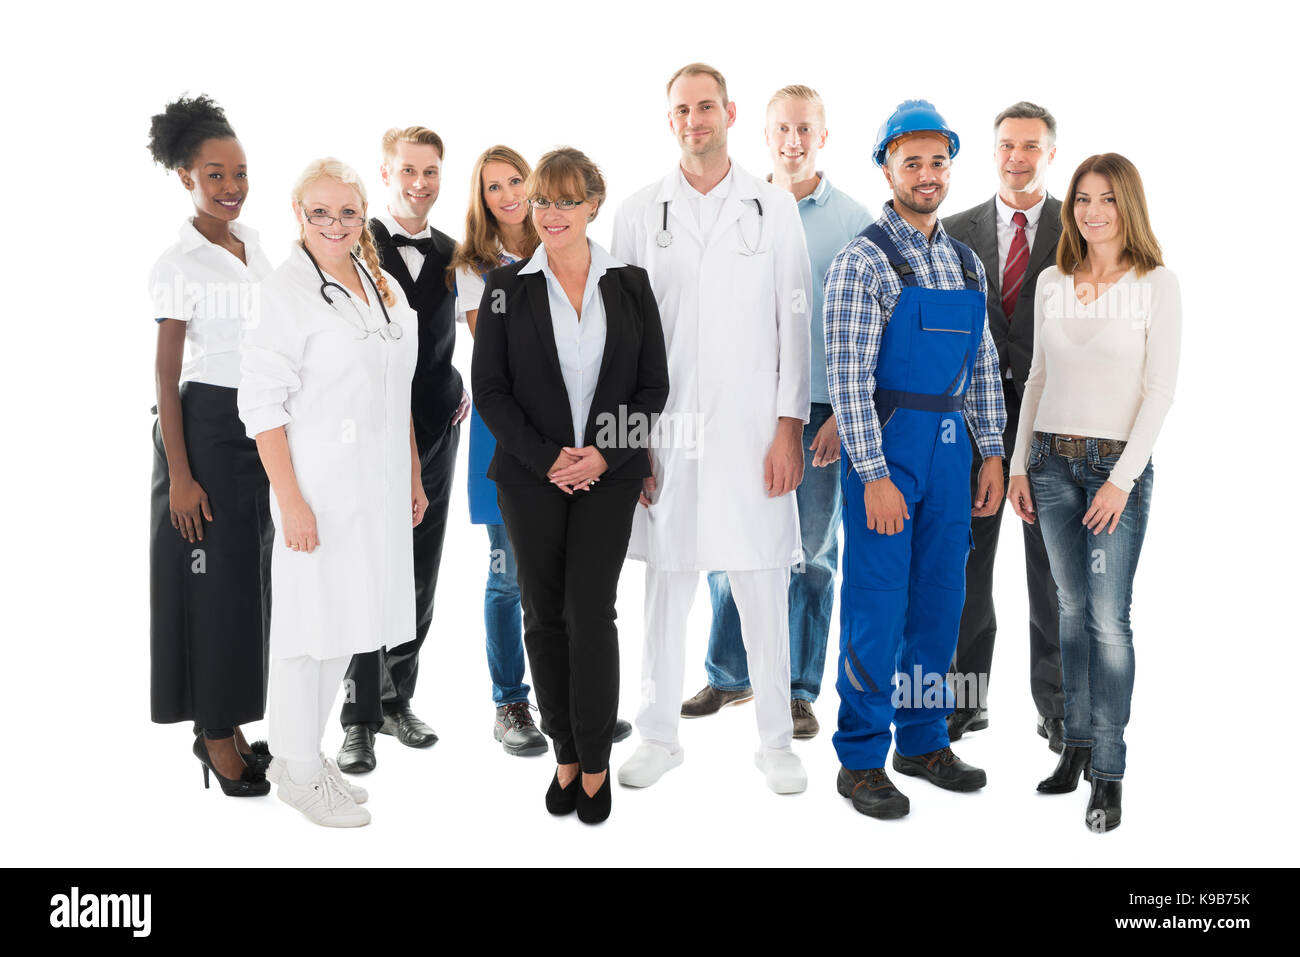 Group portrait of confident people with various occupations standing against white background - Stock Image